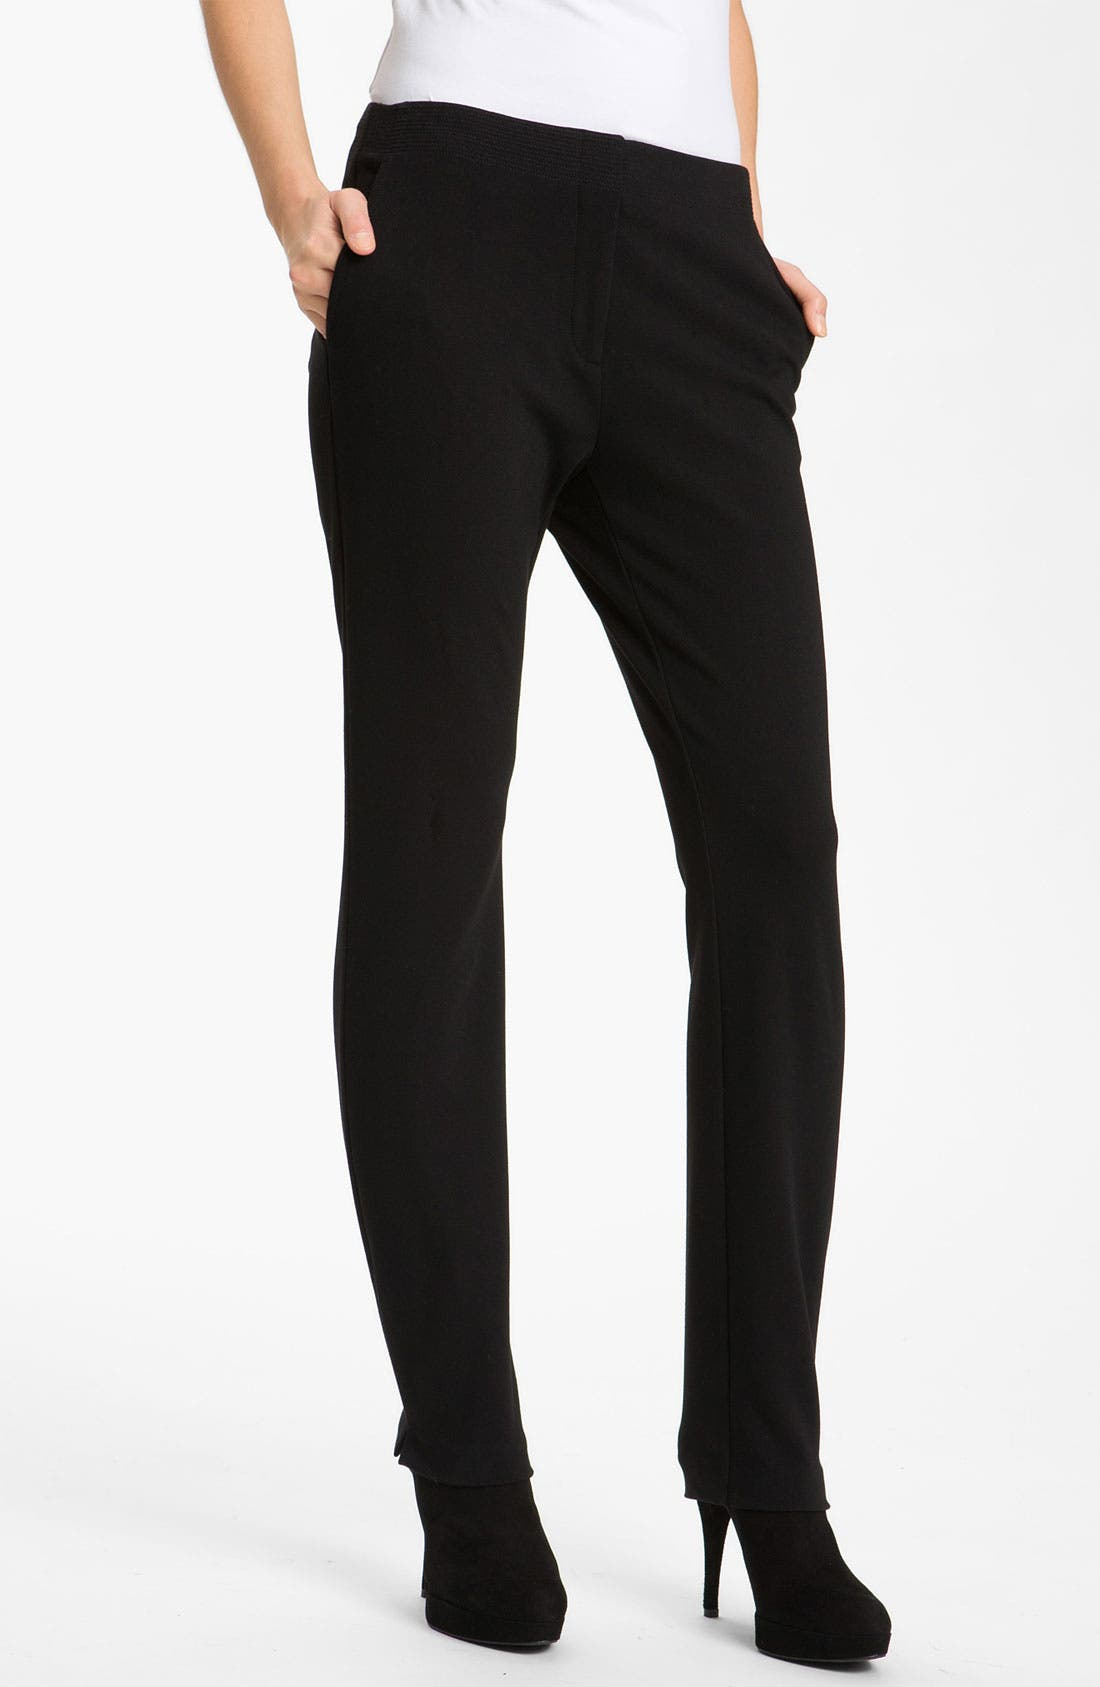 Main Image - Eileen Fisher Slim Ponte Knit Pants